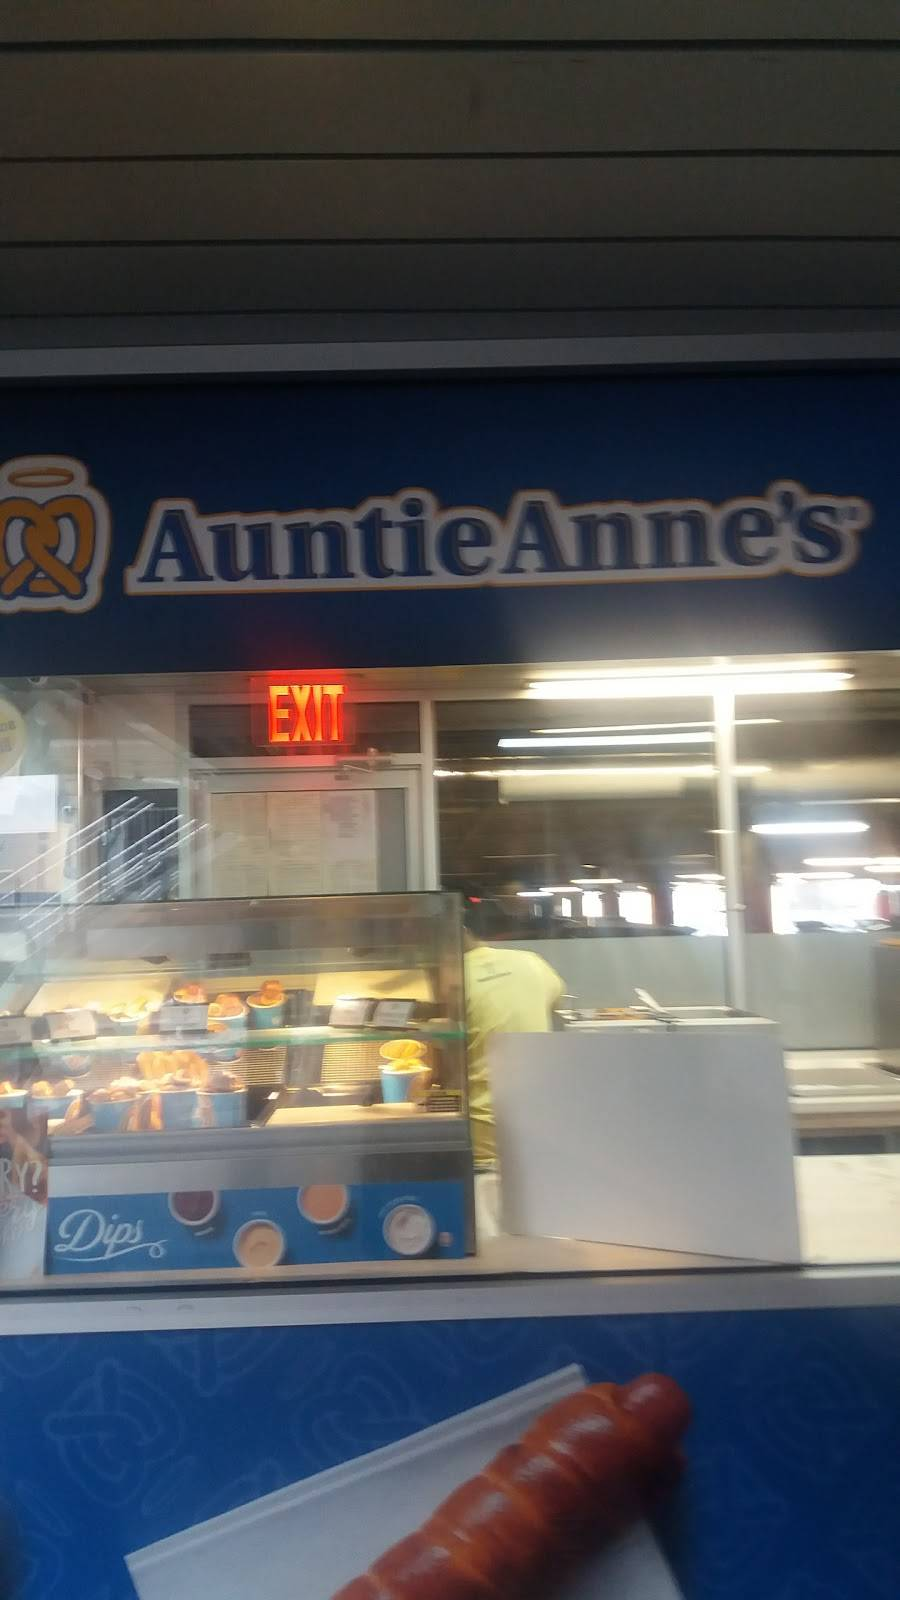 Auntie Annes | cafe | West 230th Street, 5532 Broadway, Bronx, NY 10463, USA | 7185482200 OR +1 718-548-2200